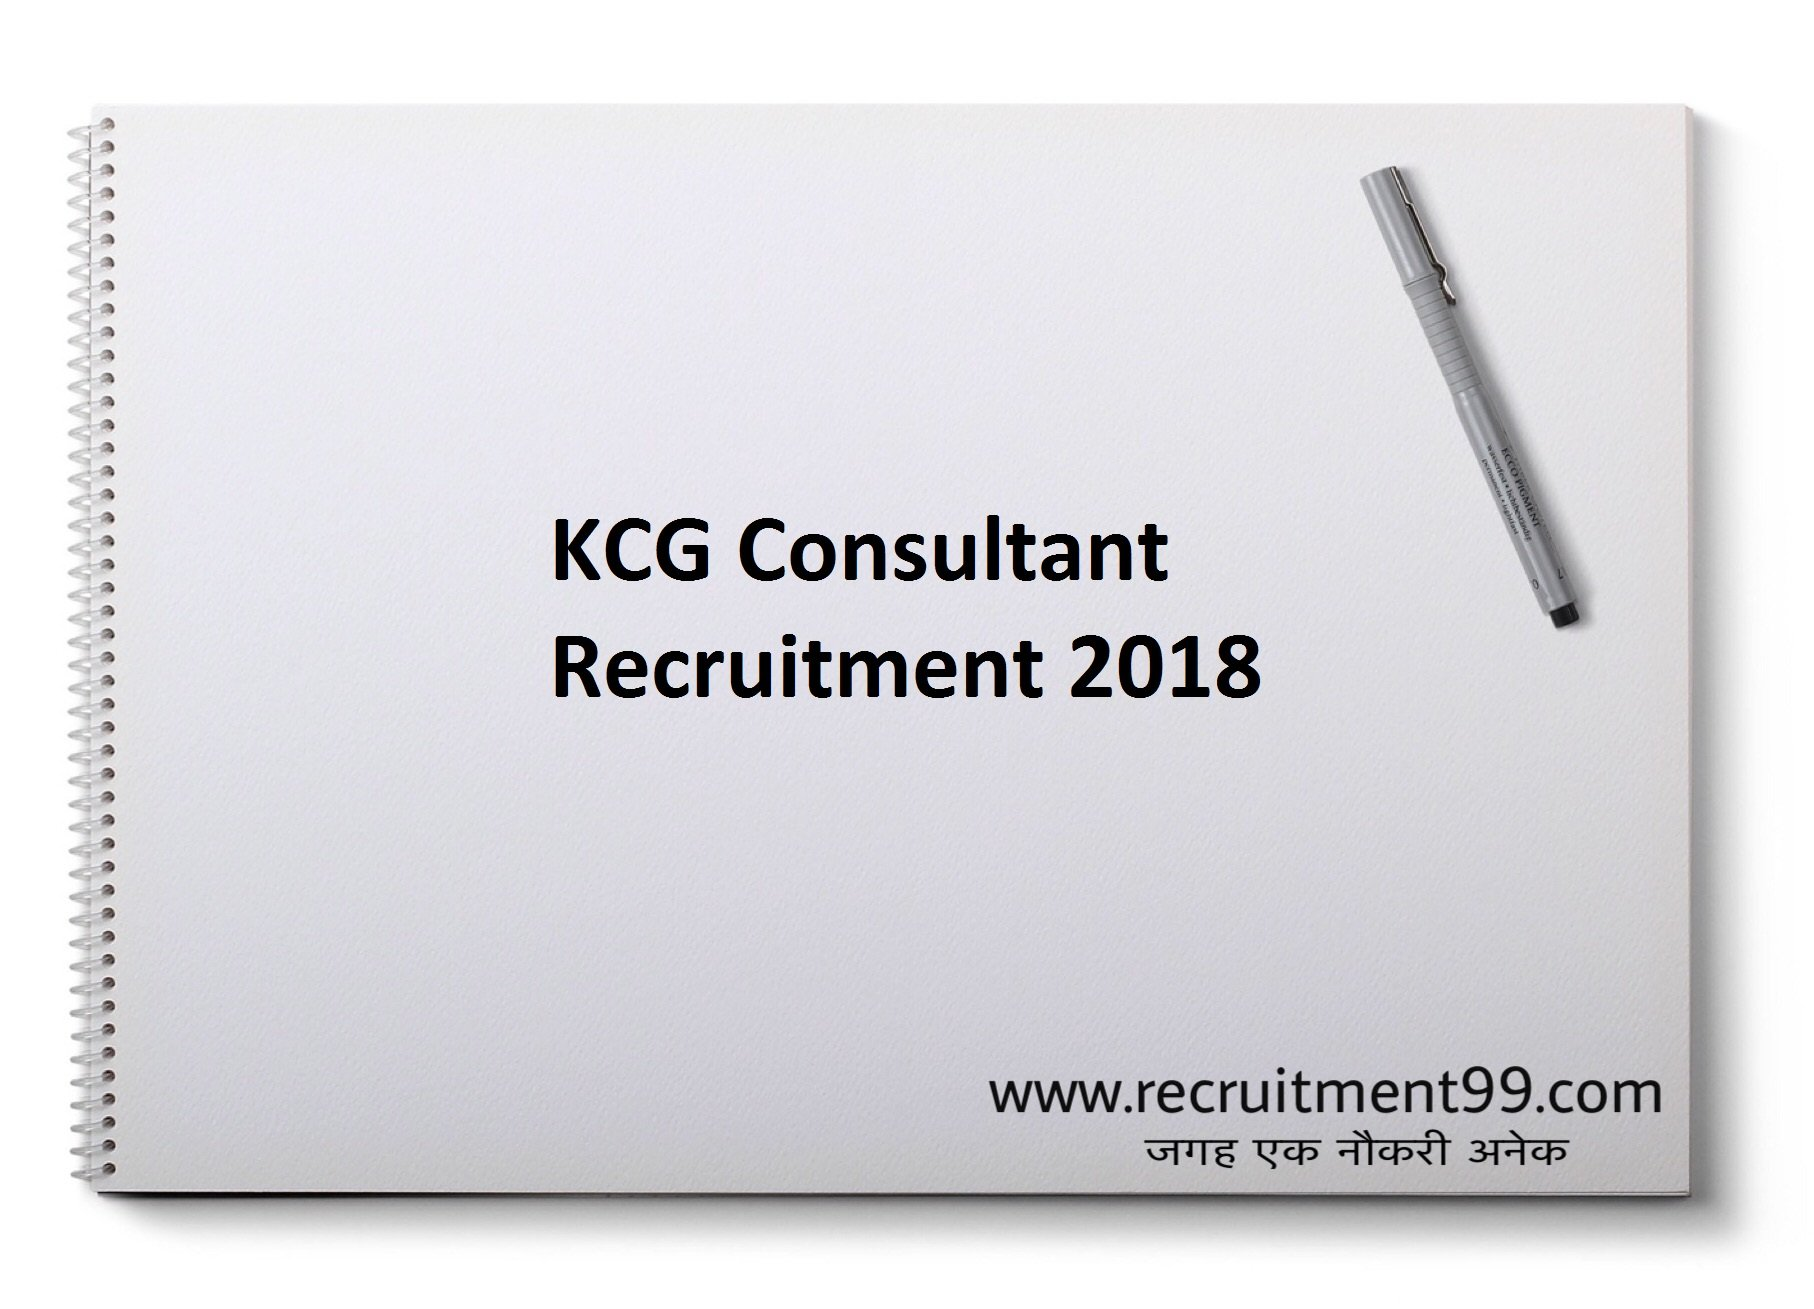 KCG Consultant Recruitment Admit Card Result 2018